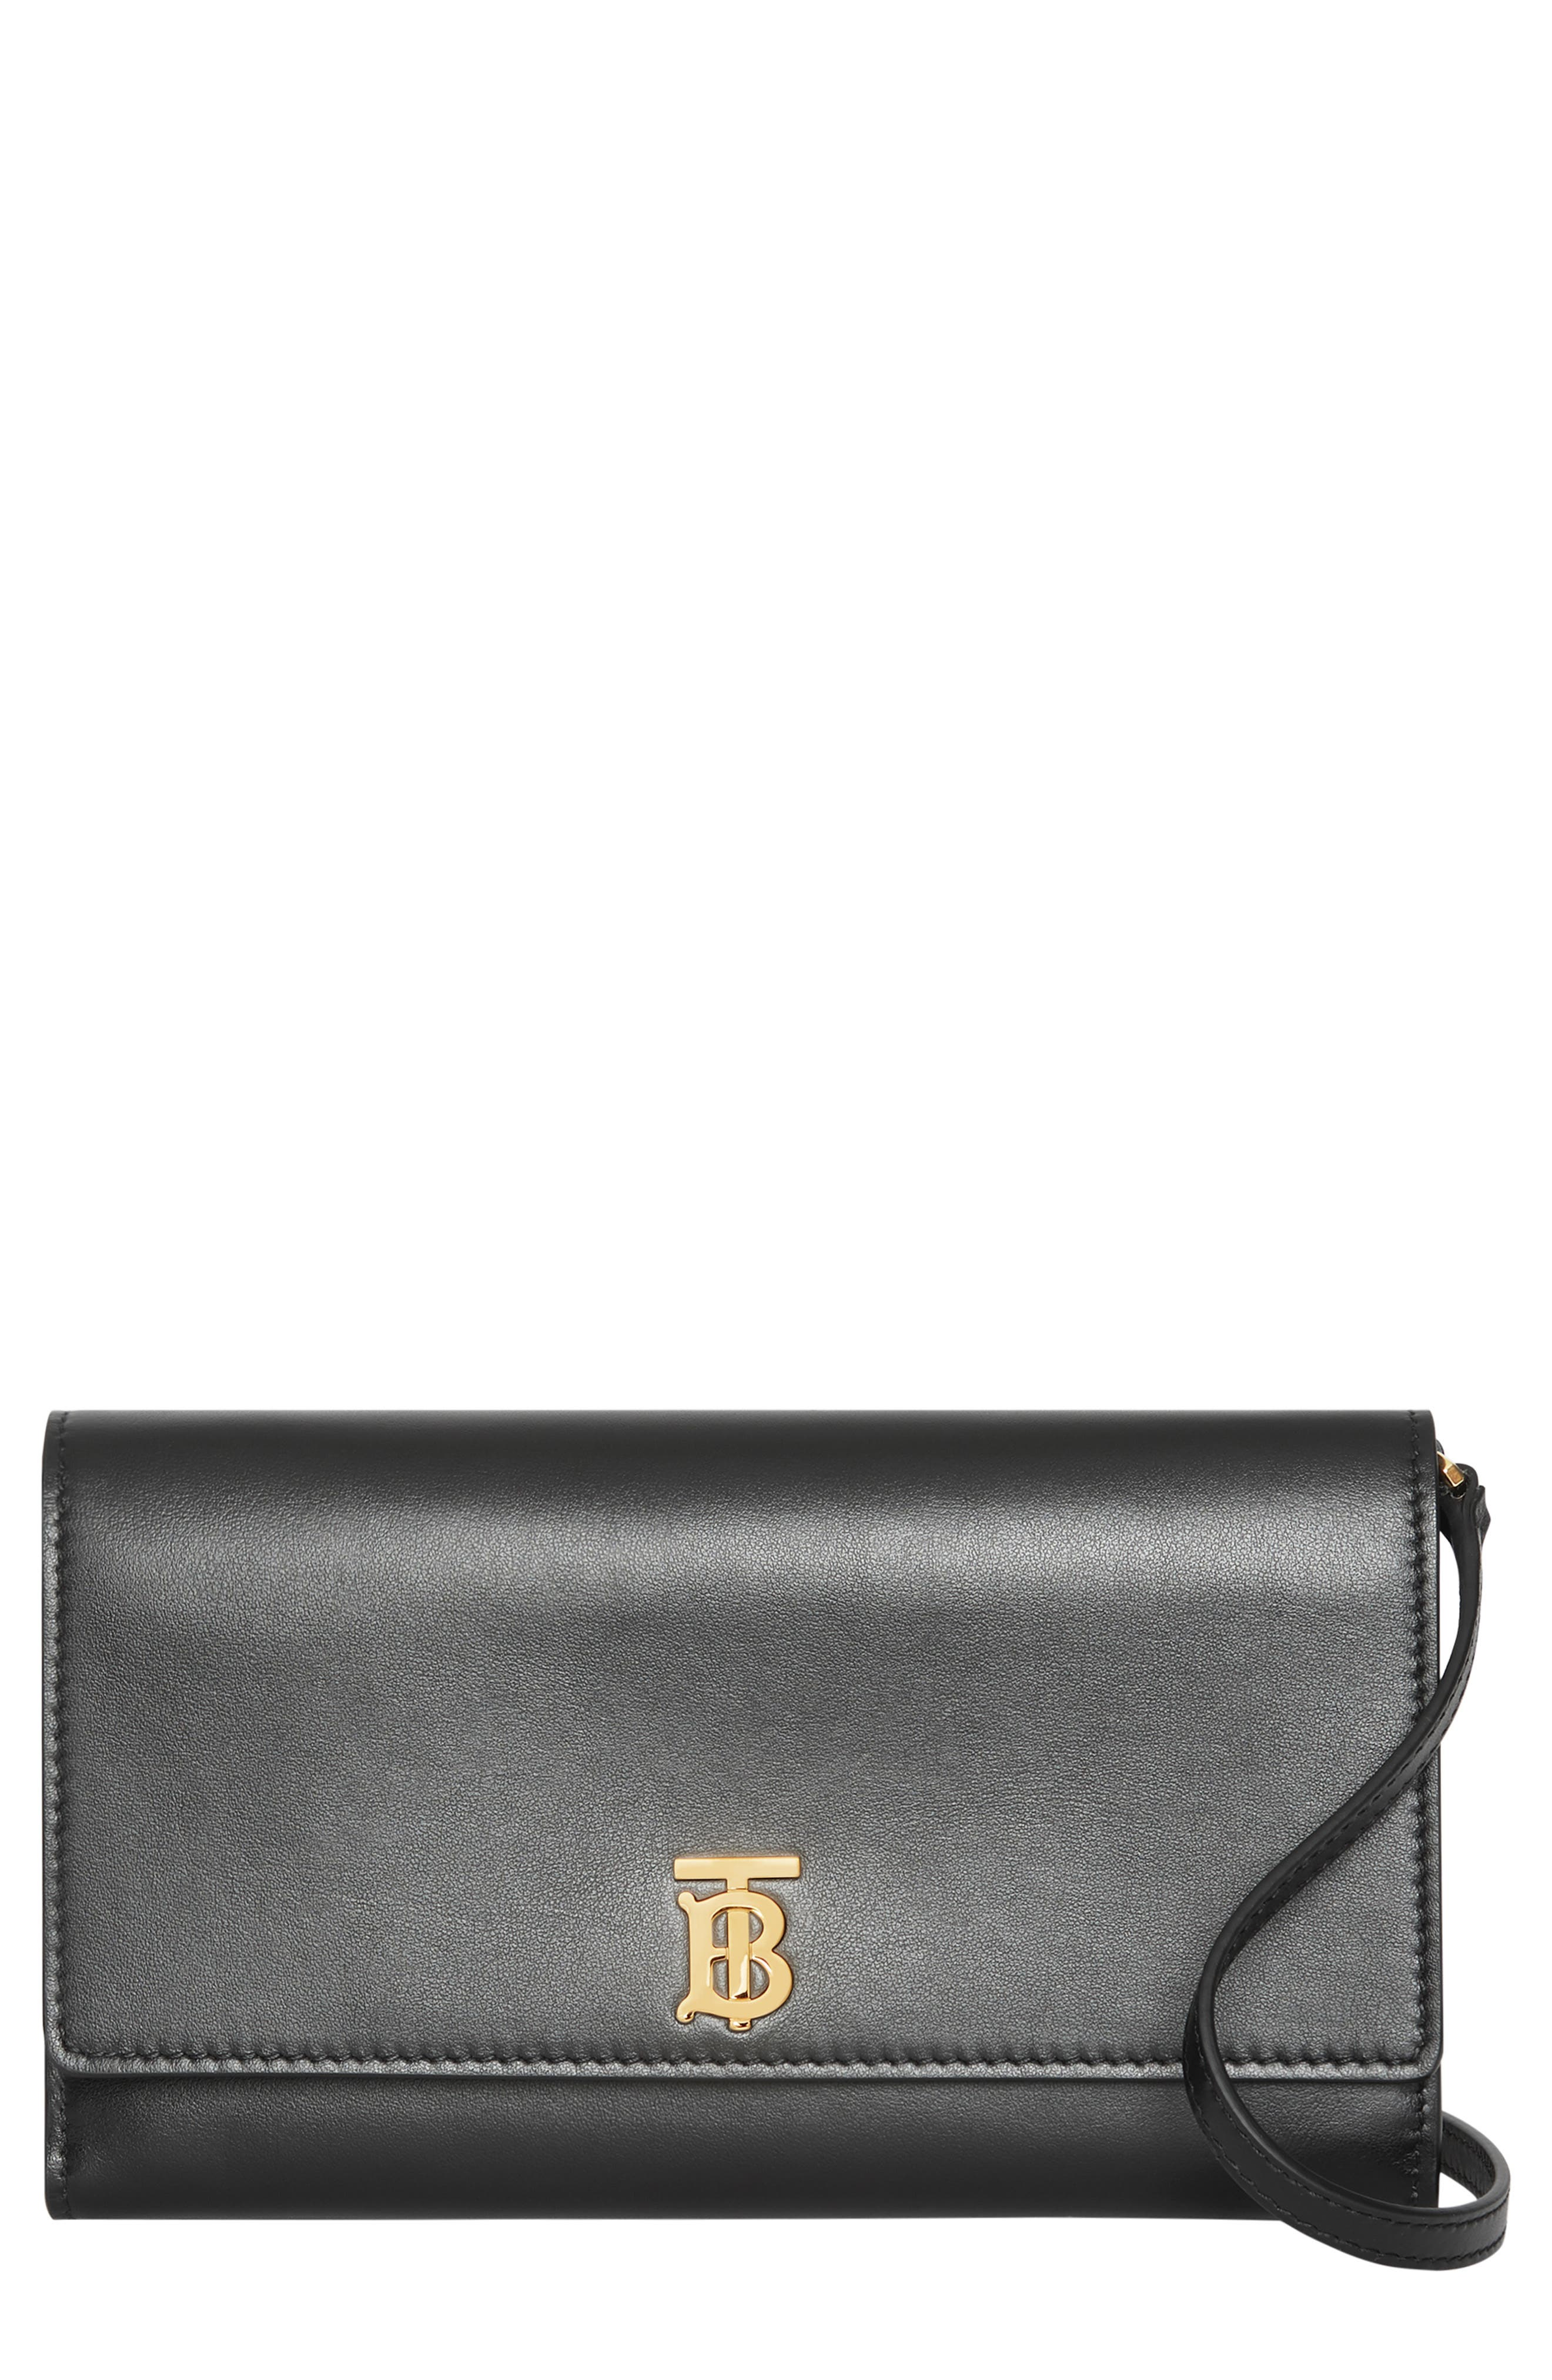 BURBERRY Hazelmere Leather Crossbody Wallet, Main, color, BLACK